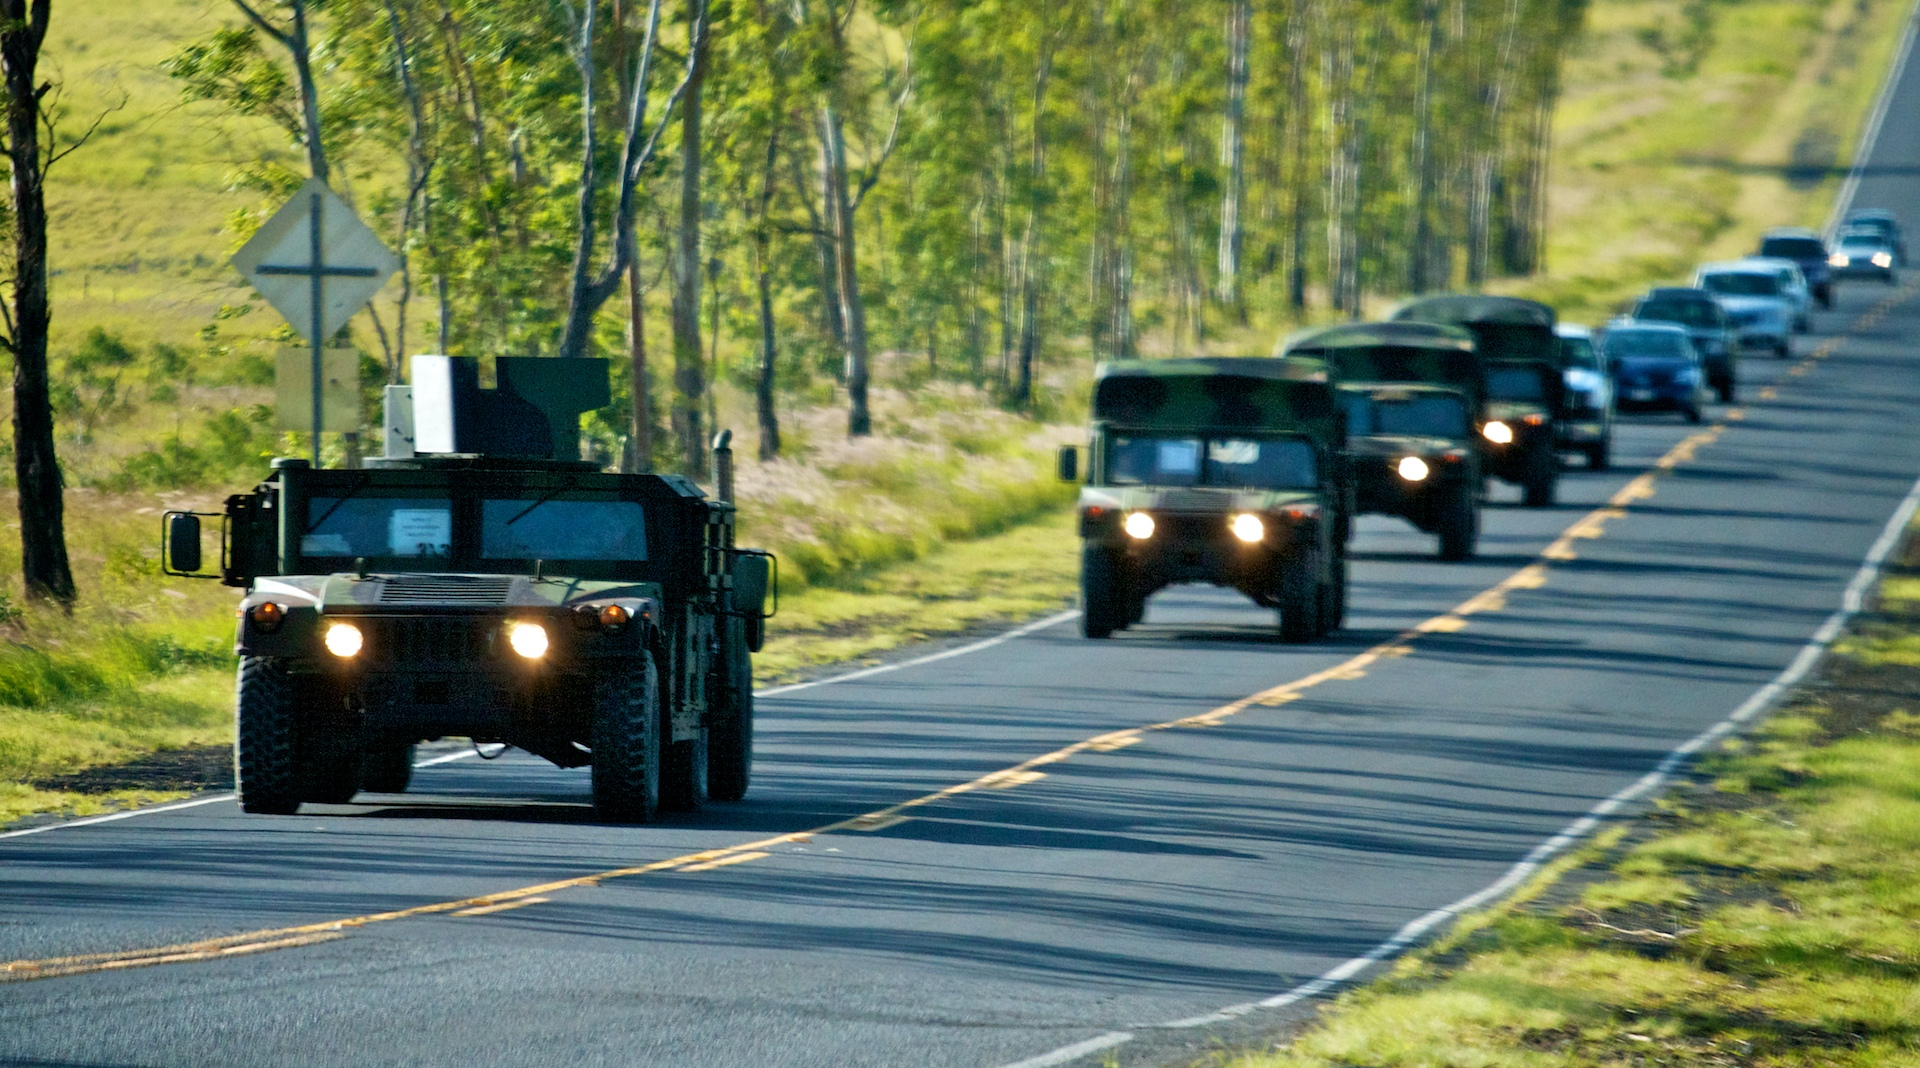 Oahu-based military units will convoy from Kawaihae Harbor to Pohakuloa Training Area between 10 a.m. and 4 p.m. Friday, March 16 via Kawaihae Road, Queen Kaahumanu Highway, Waikoloa Road, Mamalahoa Highway and Saddle Road.